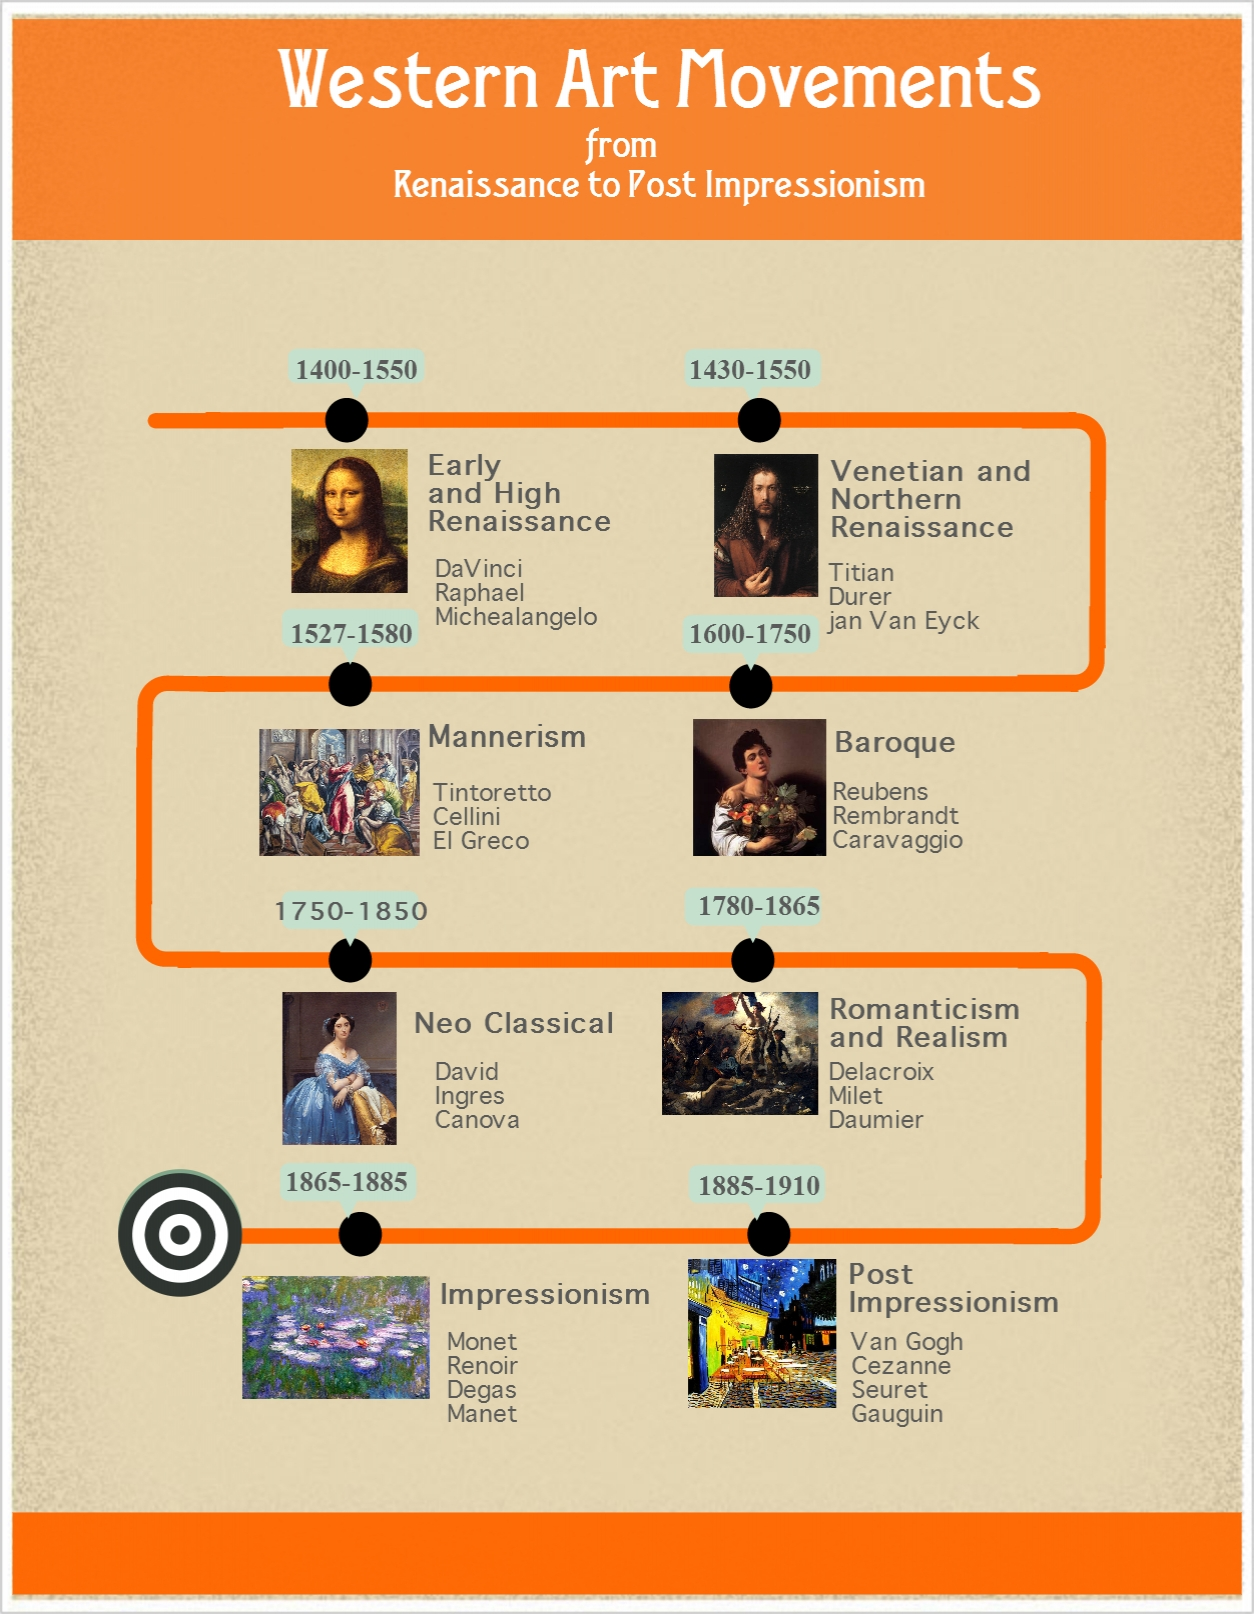 Western Art Movements Timeline History Reimagined